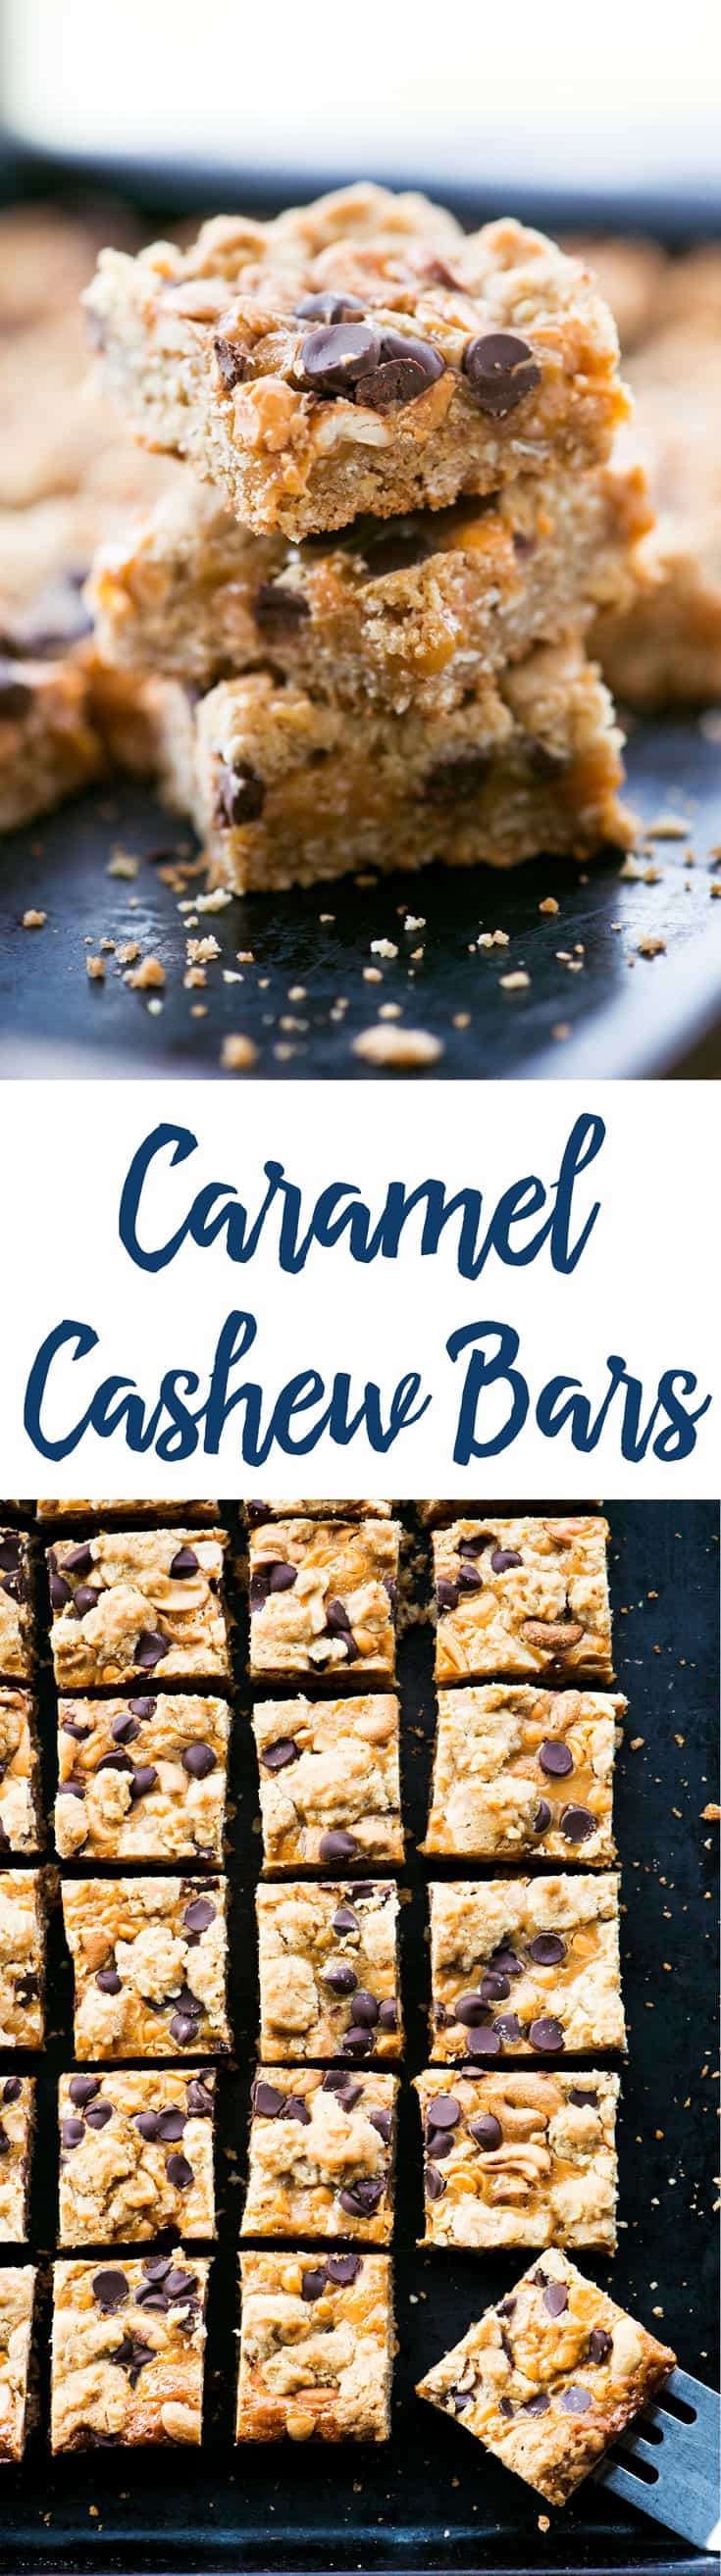 This Chewy Caramel Cashew Bars recipe is a delicious combination of salty and sweet with oats, caramel, chocolate, butterscotch and cashews!